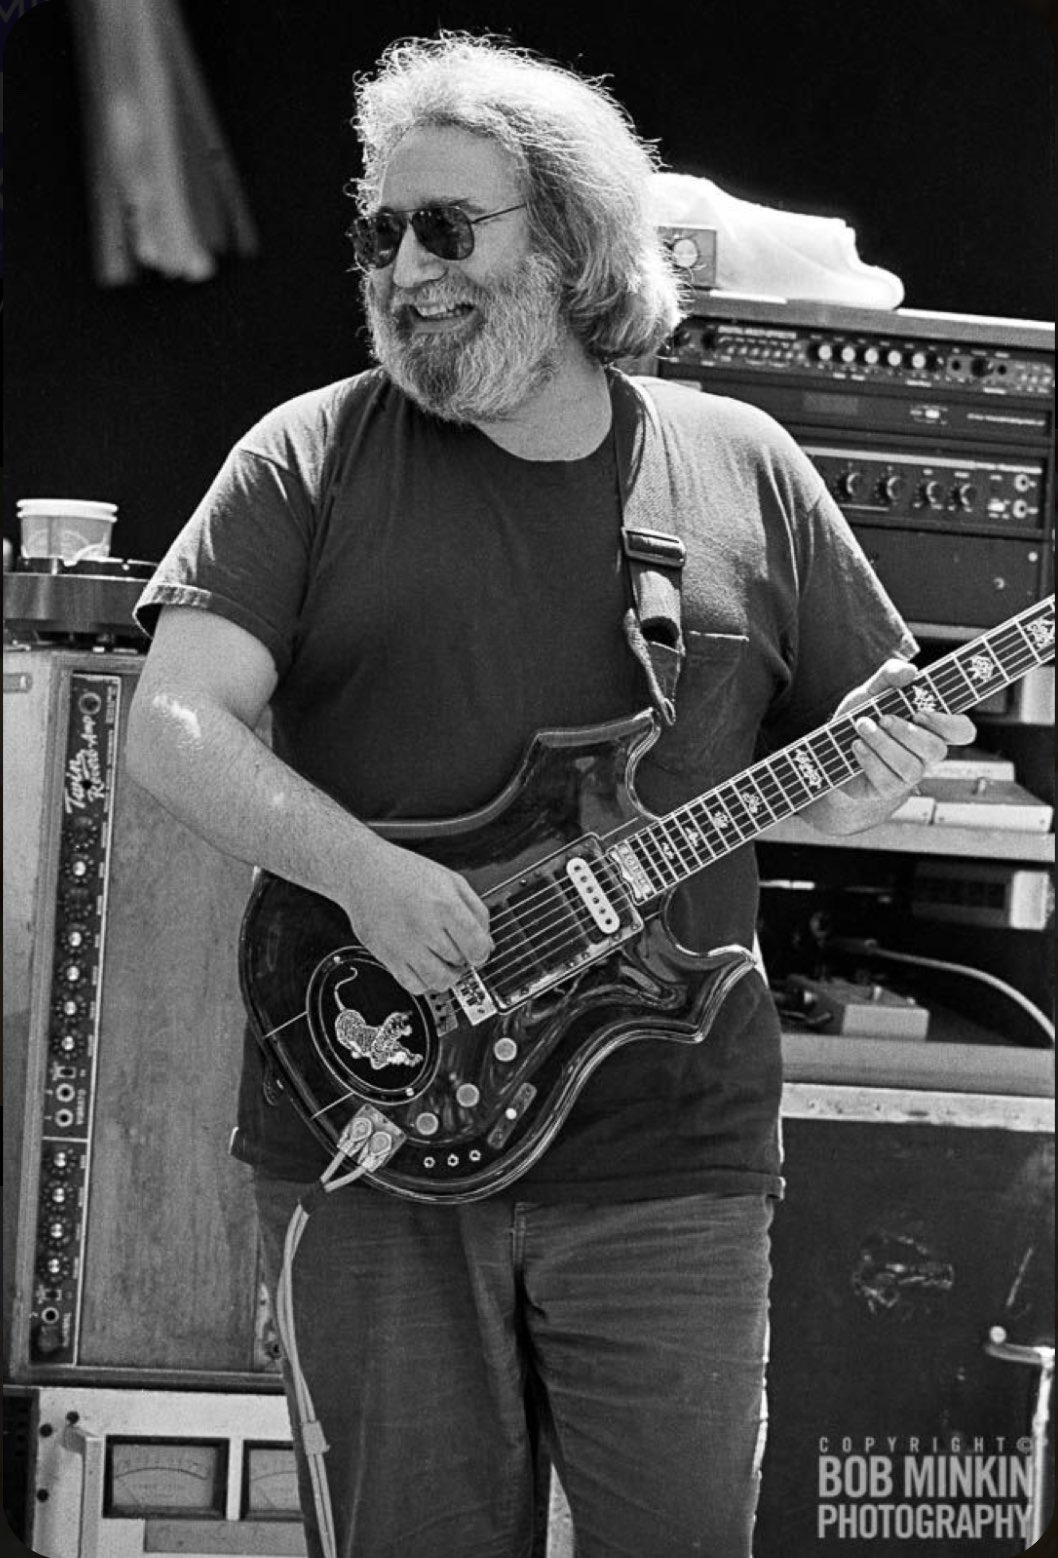 Happy Heavenly birthday to the goat Jerry Garcia. Nobody did it better